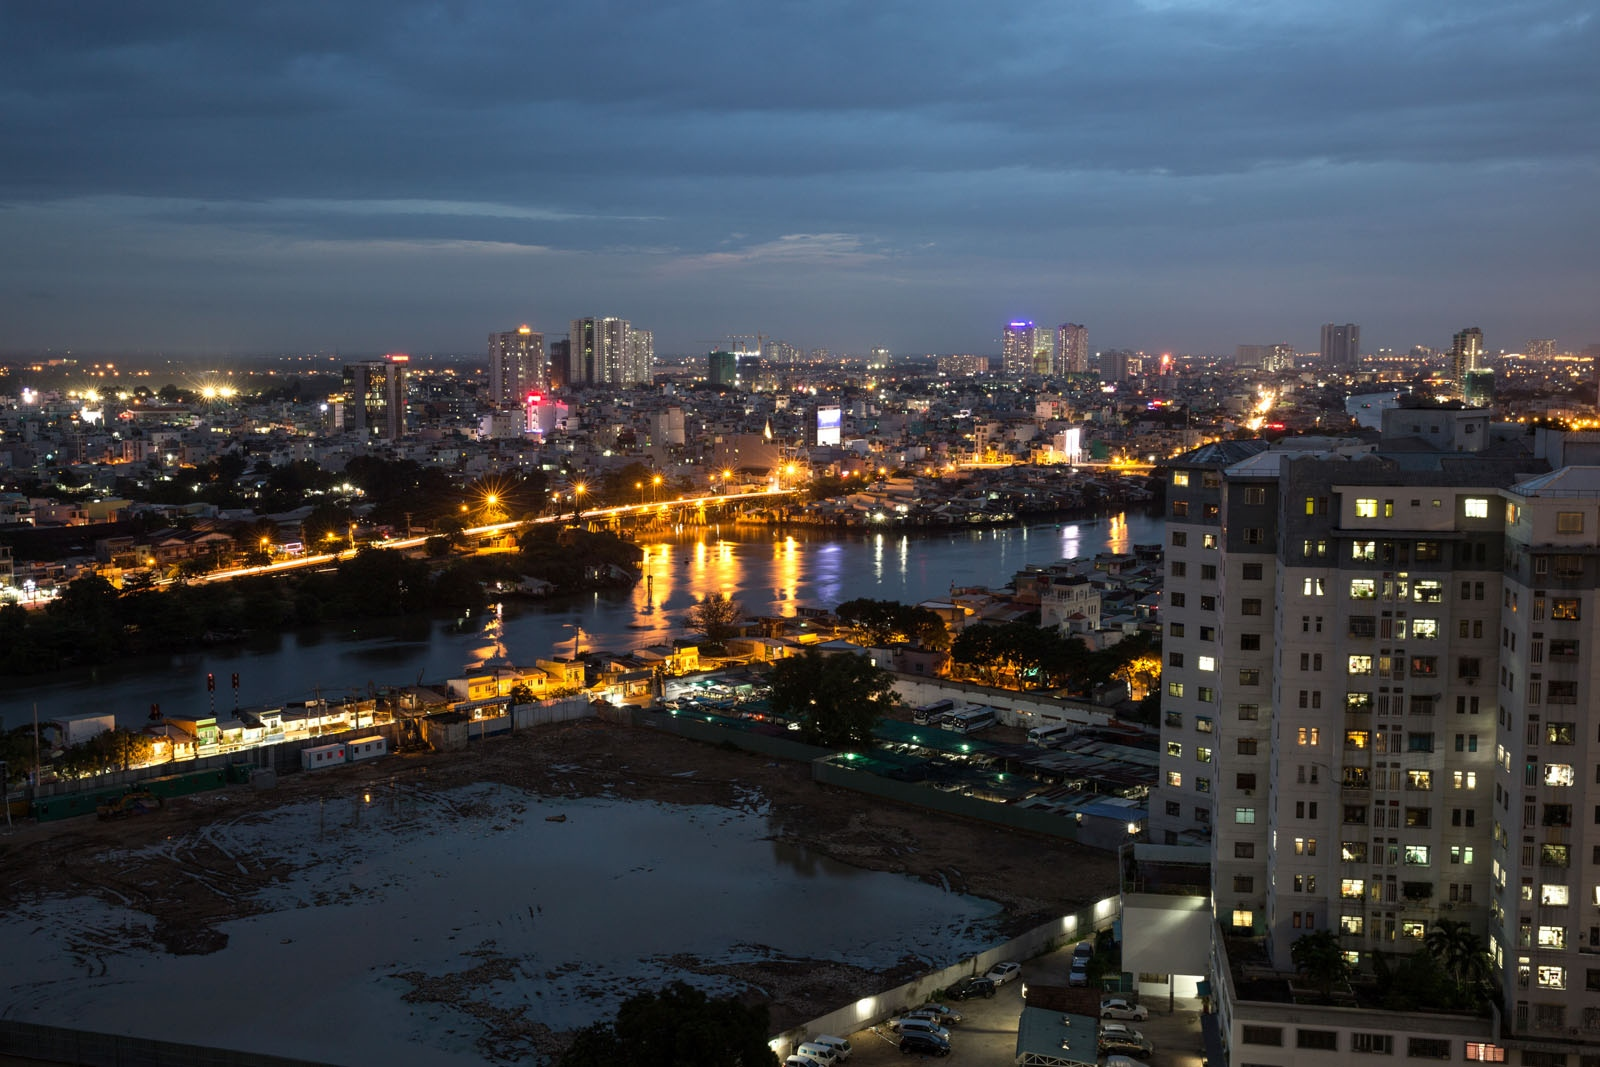 A view of Ho Chi Minh at dusk showing the rapid urbanisation of the city. In the foreground lies a water-logged construction site that will soon become a condominium. It is Vietnam's most populated city of approximately 12 million people, sitting at an altitude of little over 10 meters above sea level and is surrounded by rivers. With climate change causing sea levels to rise Ho Chi Minh and the Delta to its Southwest could be at serious risk in the future.